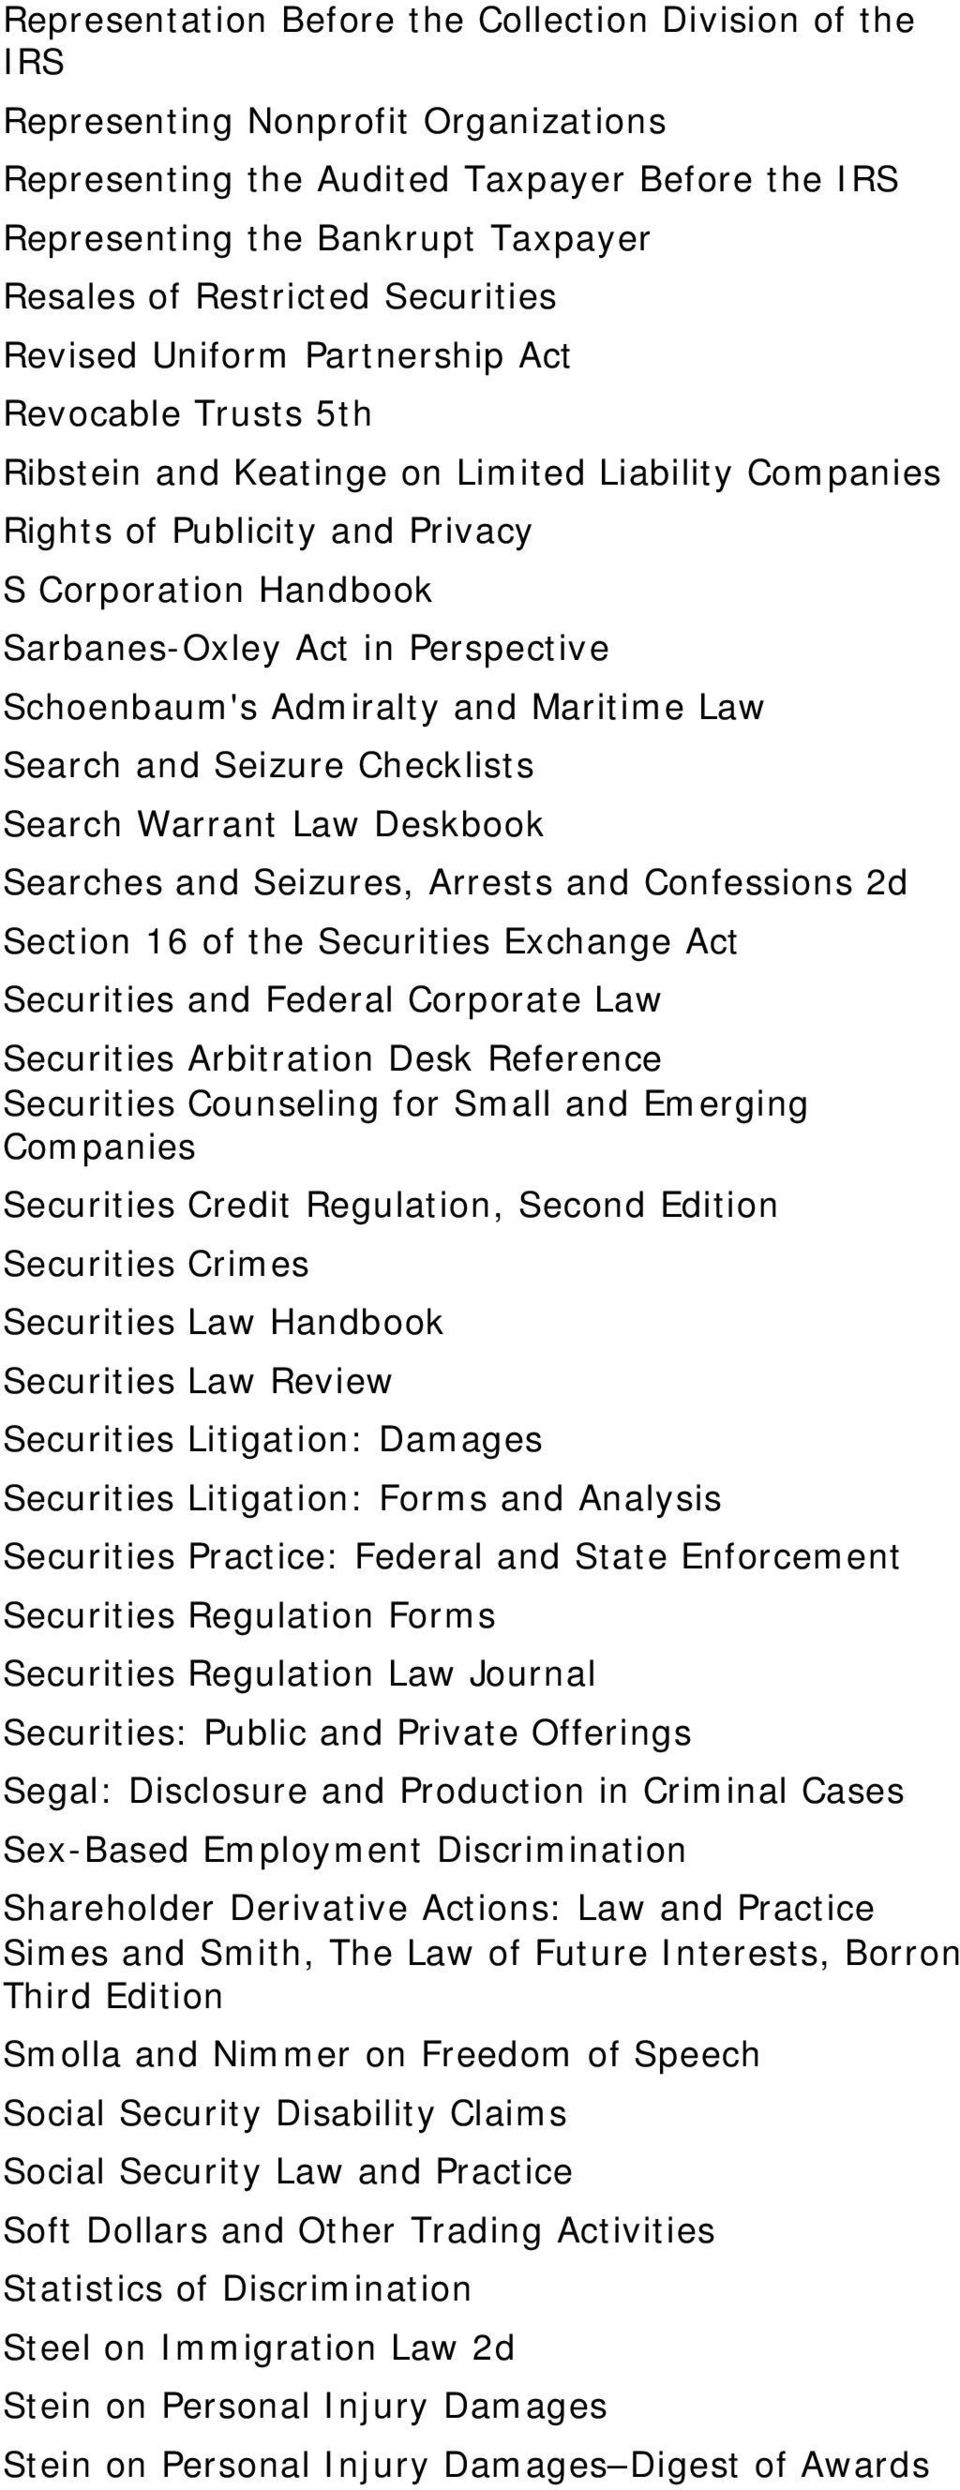 Perspective Schoenbaum's Admiralty and Maritime Law Search and Seizure Checklists Search Warrant Law Deskbook Searches and Seizures, Arrests and Confessions 2d Section 16 of the Securities Exchange